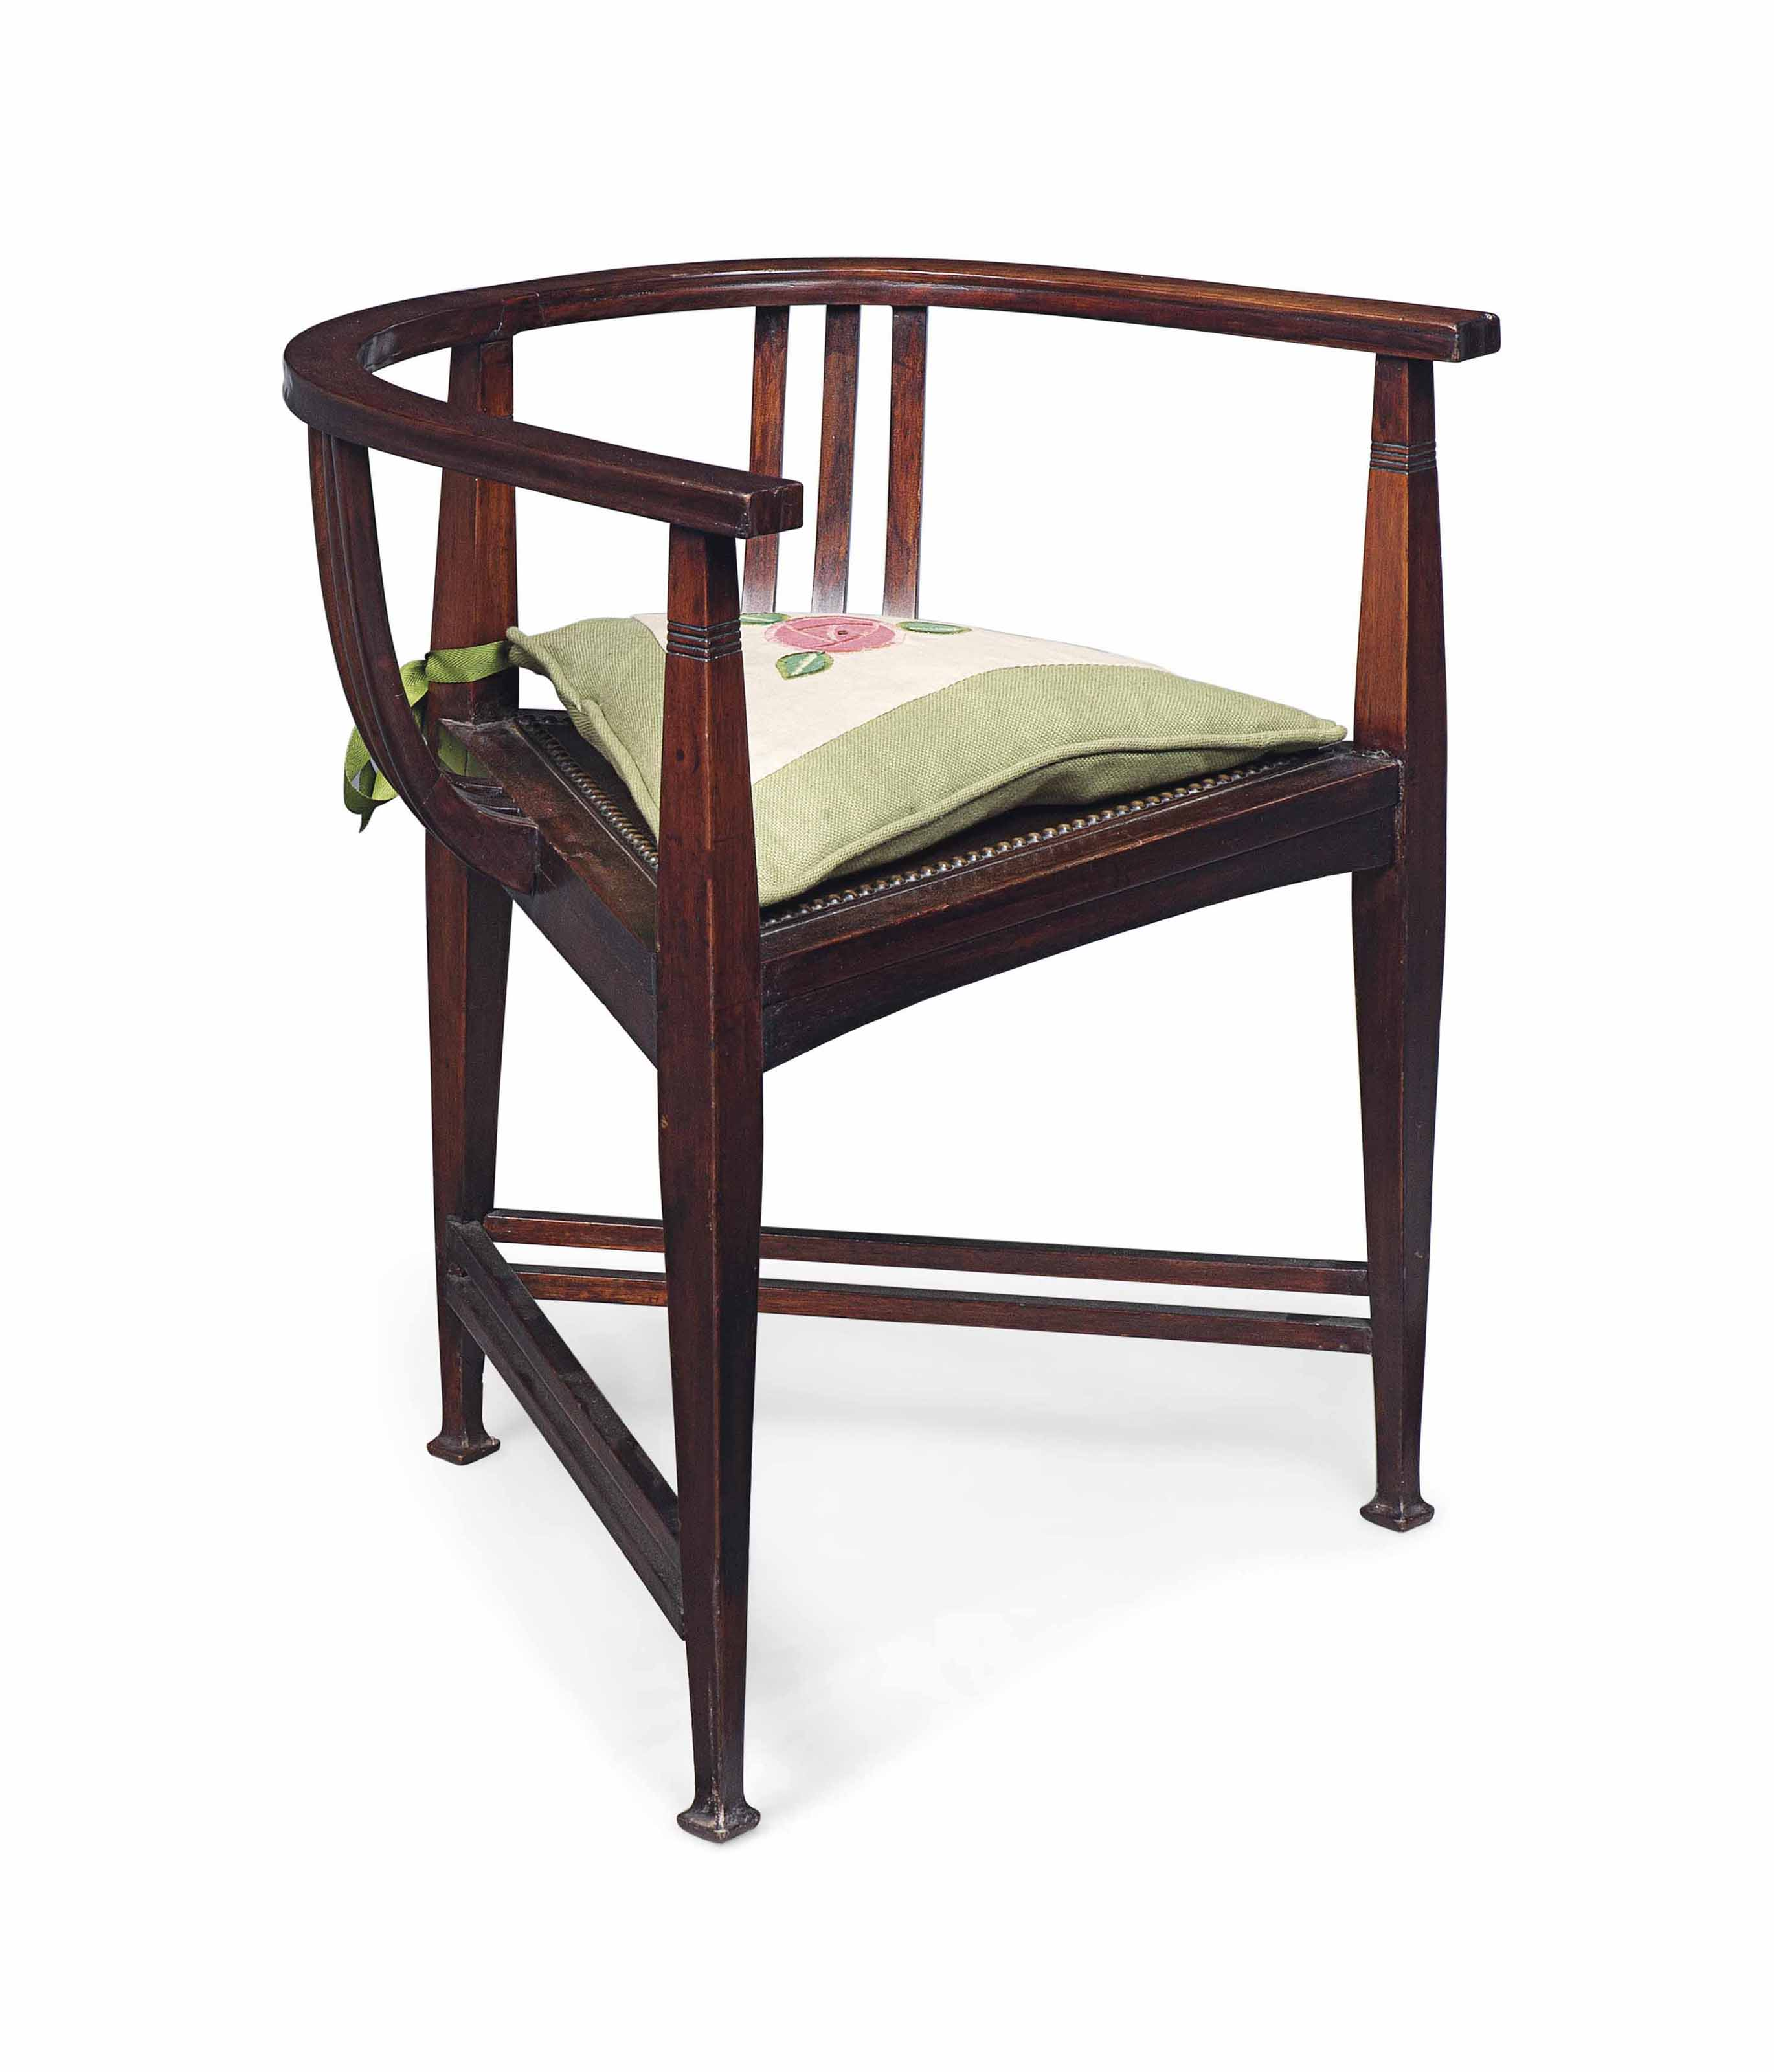 A WYLIE & LOCHHEAD (EST.1829) MAHOGANY AND BEECH ELBOW CHAIR